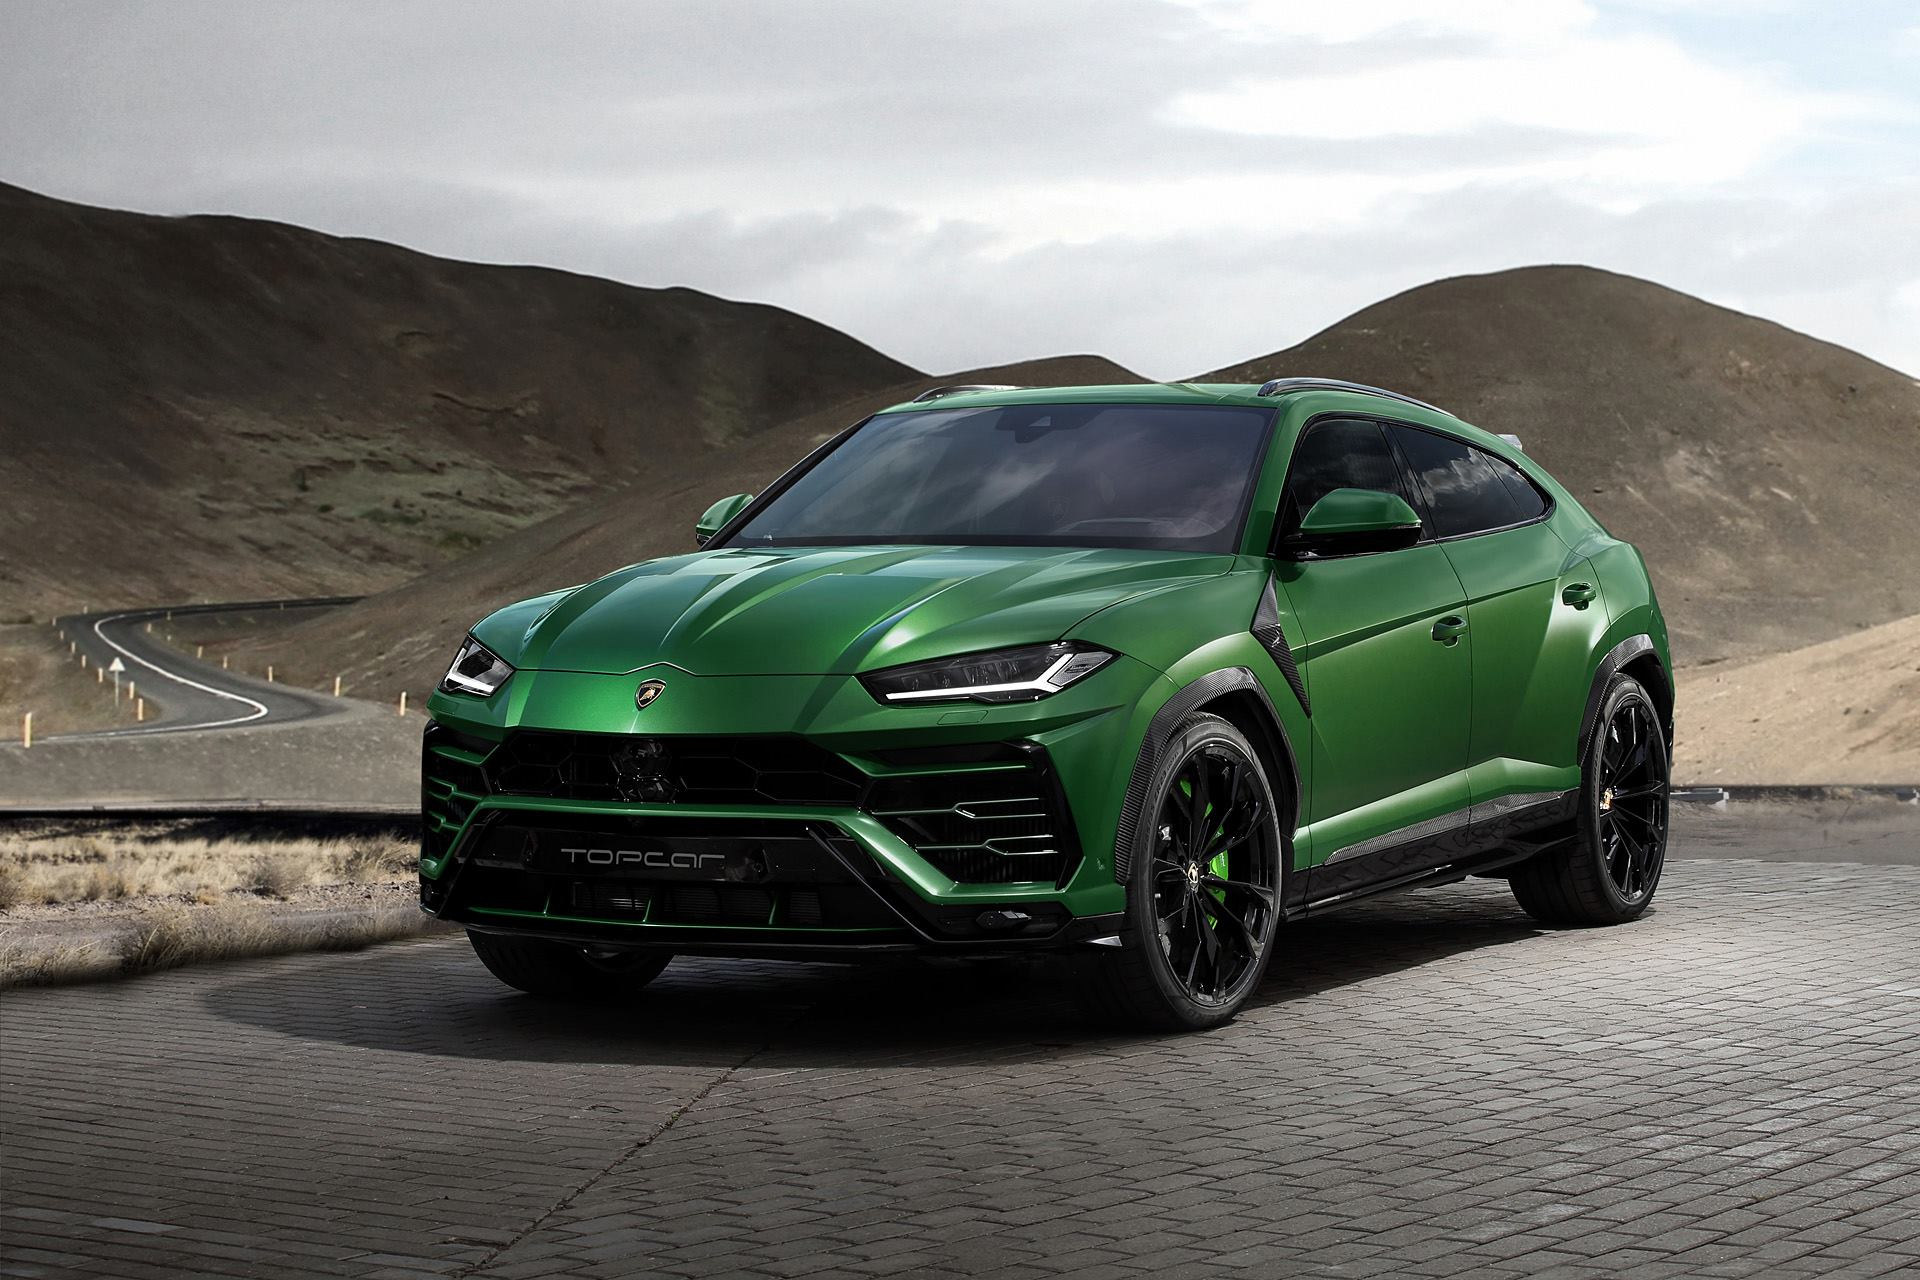 Topcar Lamborghini Urus Revealed With Military Green Paint And Camo